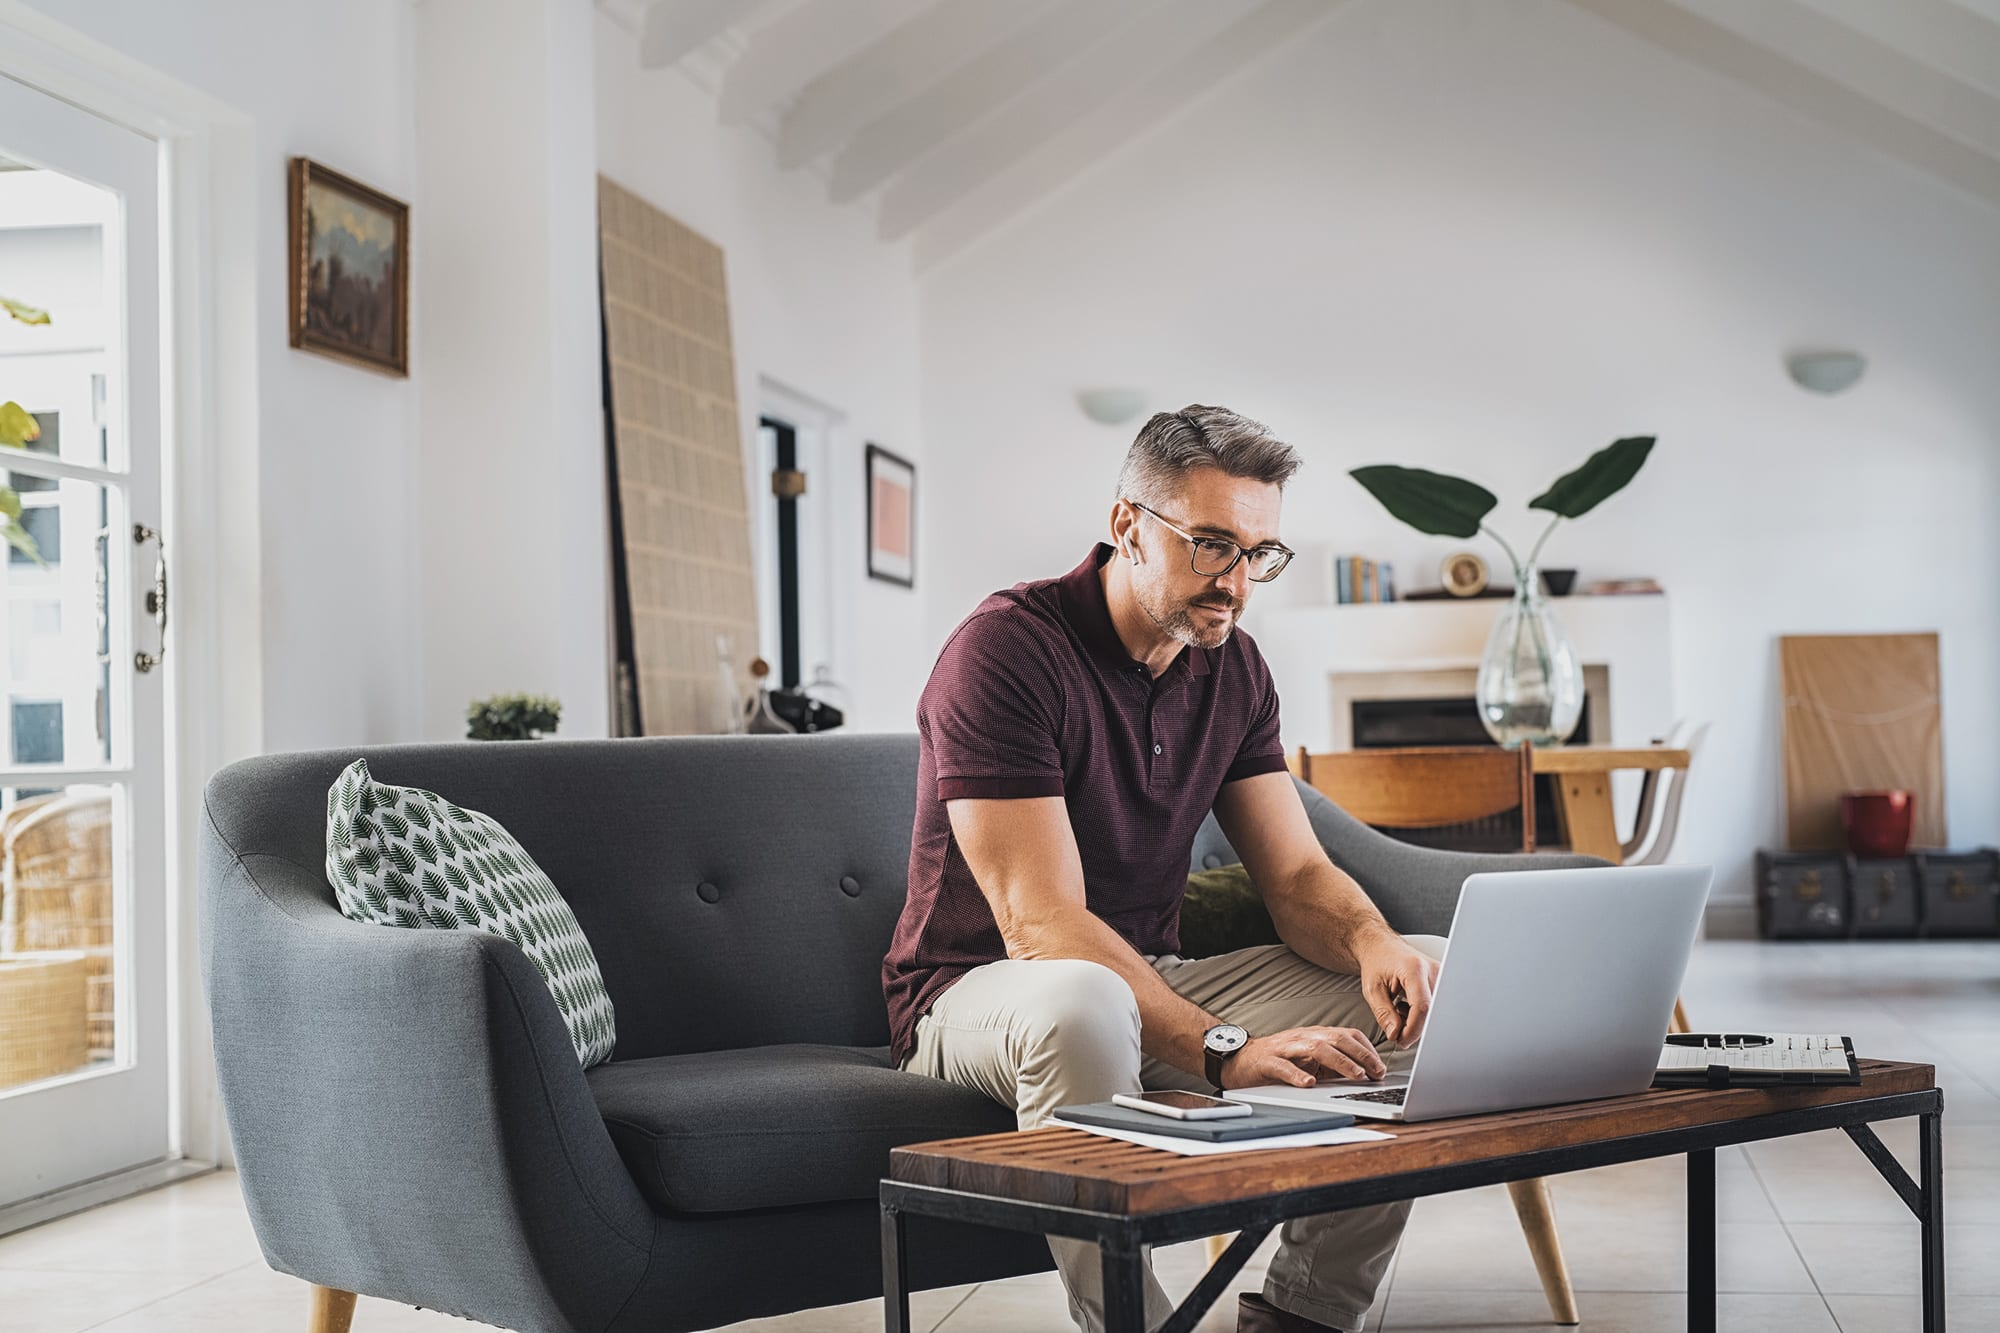 Man sitting on sofa at home working on laptop.